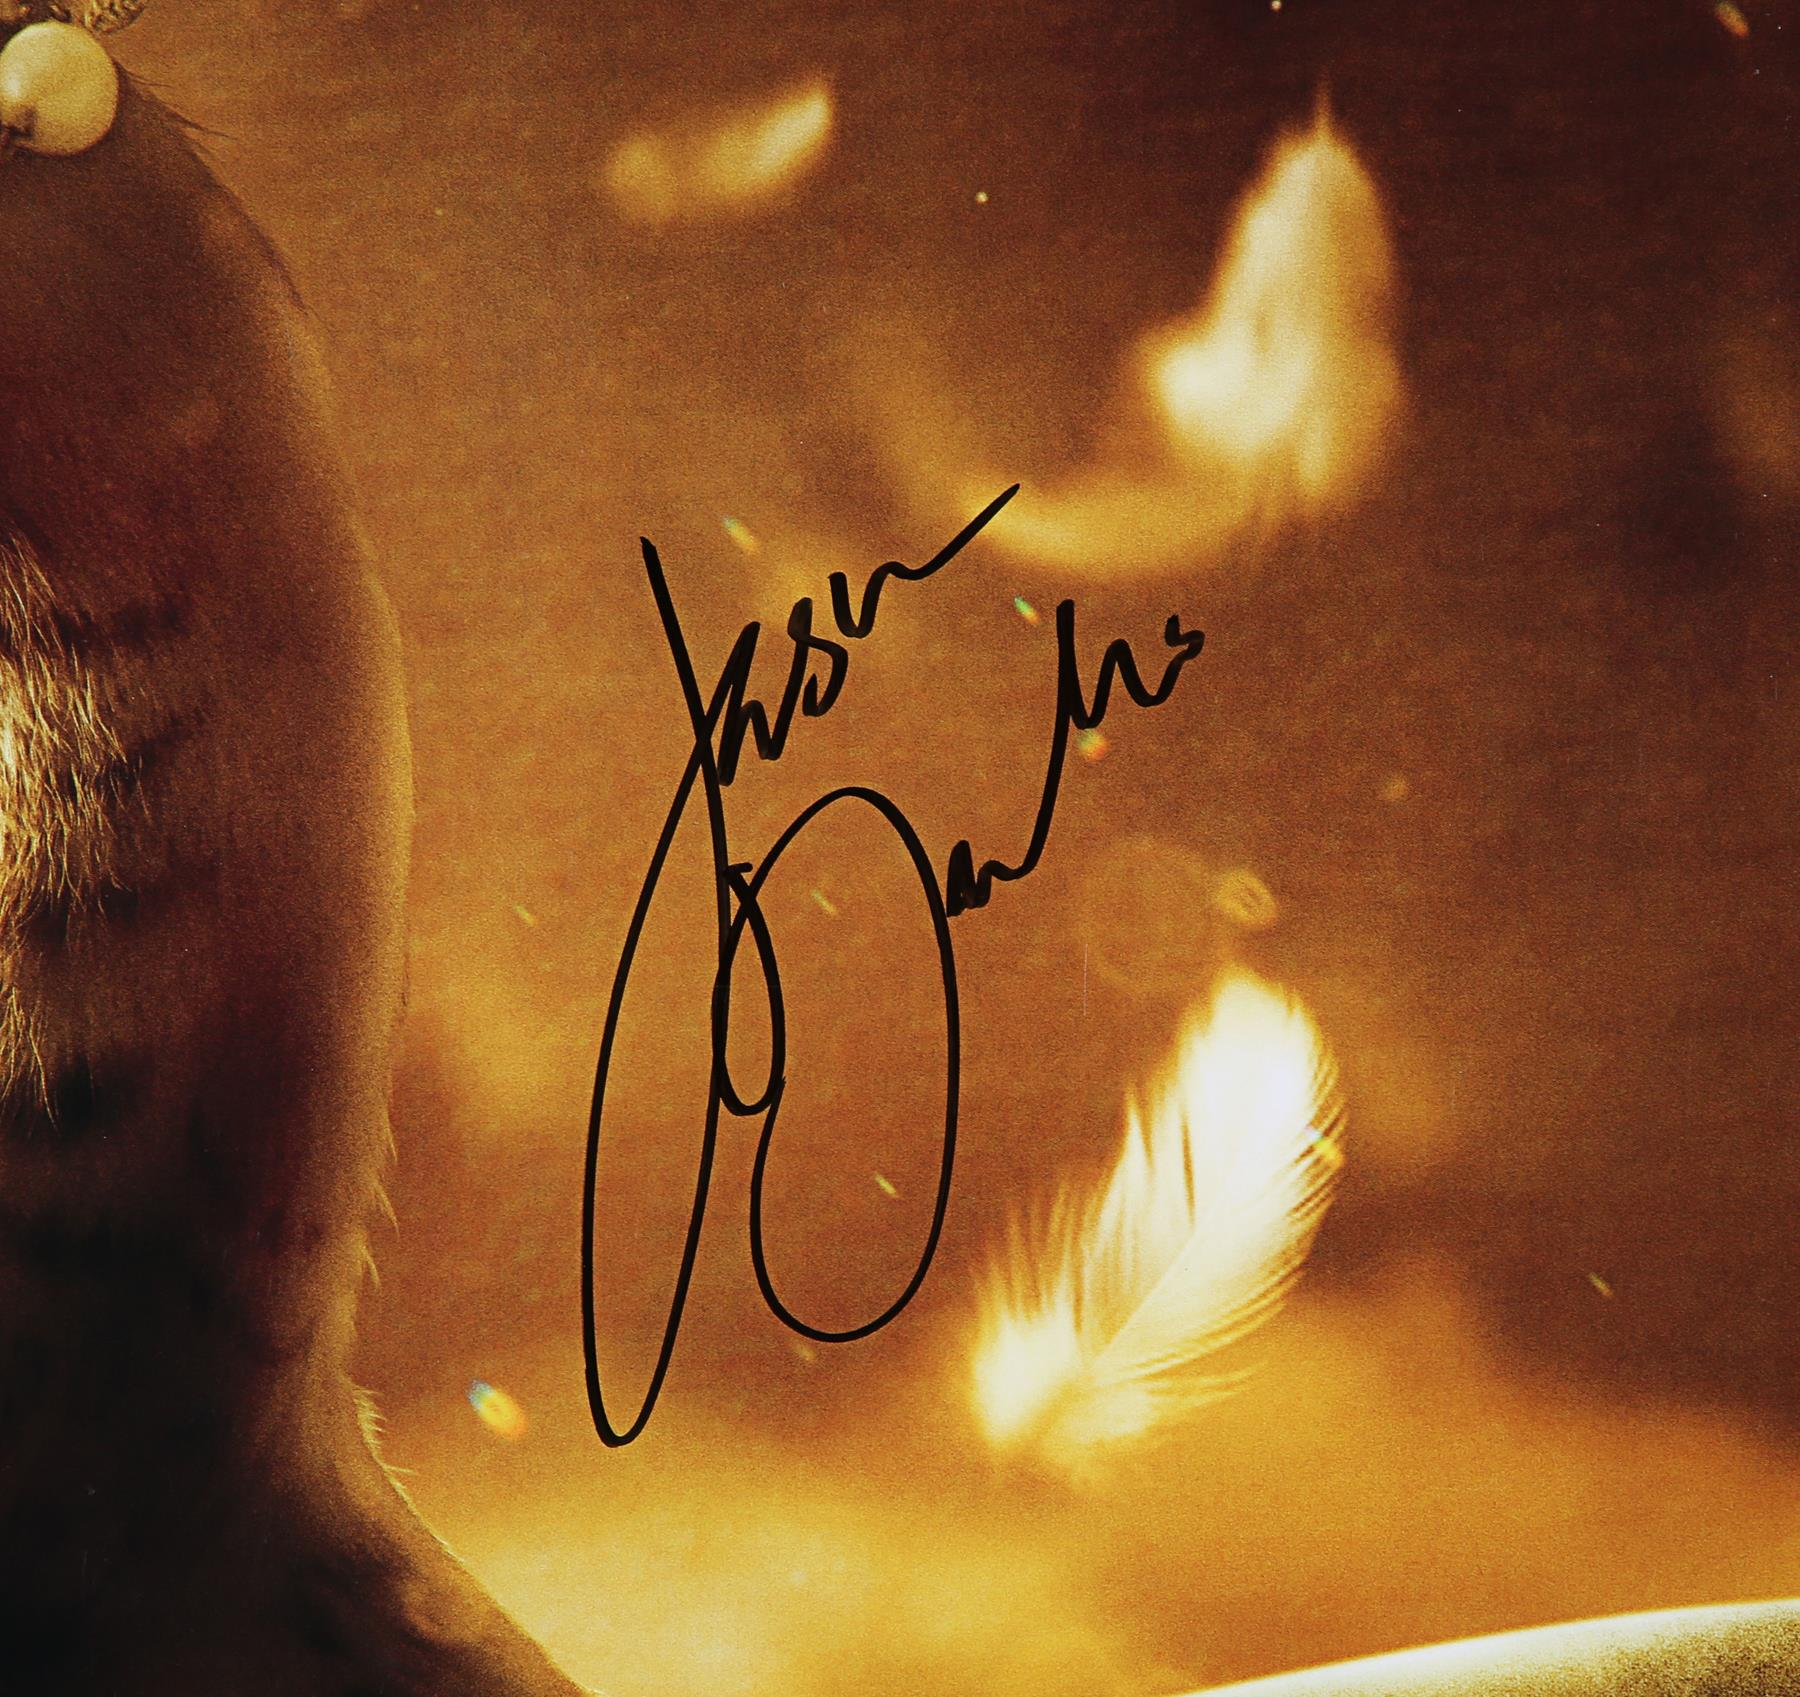 CATS (2019) - Poster, 2019, Autographed by Jason Derulo and Francesca Hayward - Image 5 of 6